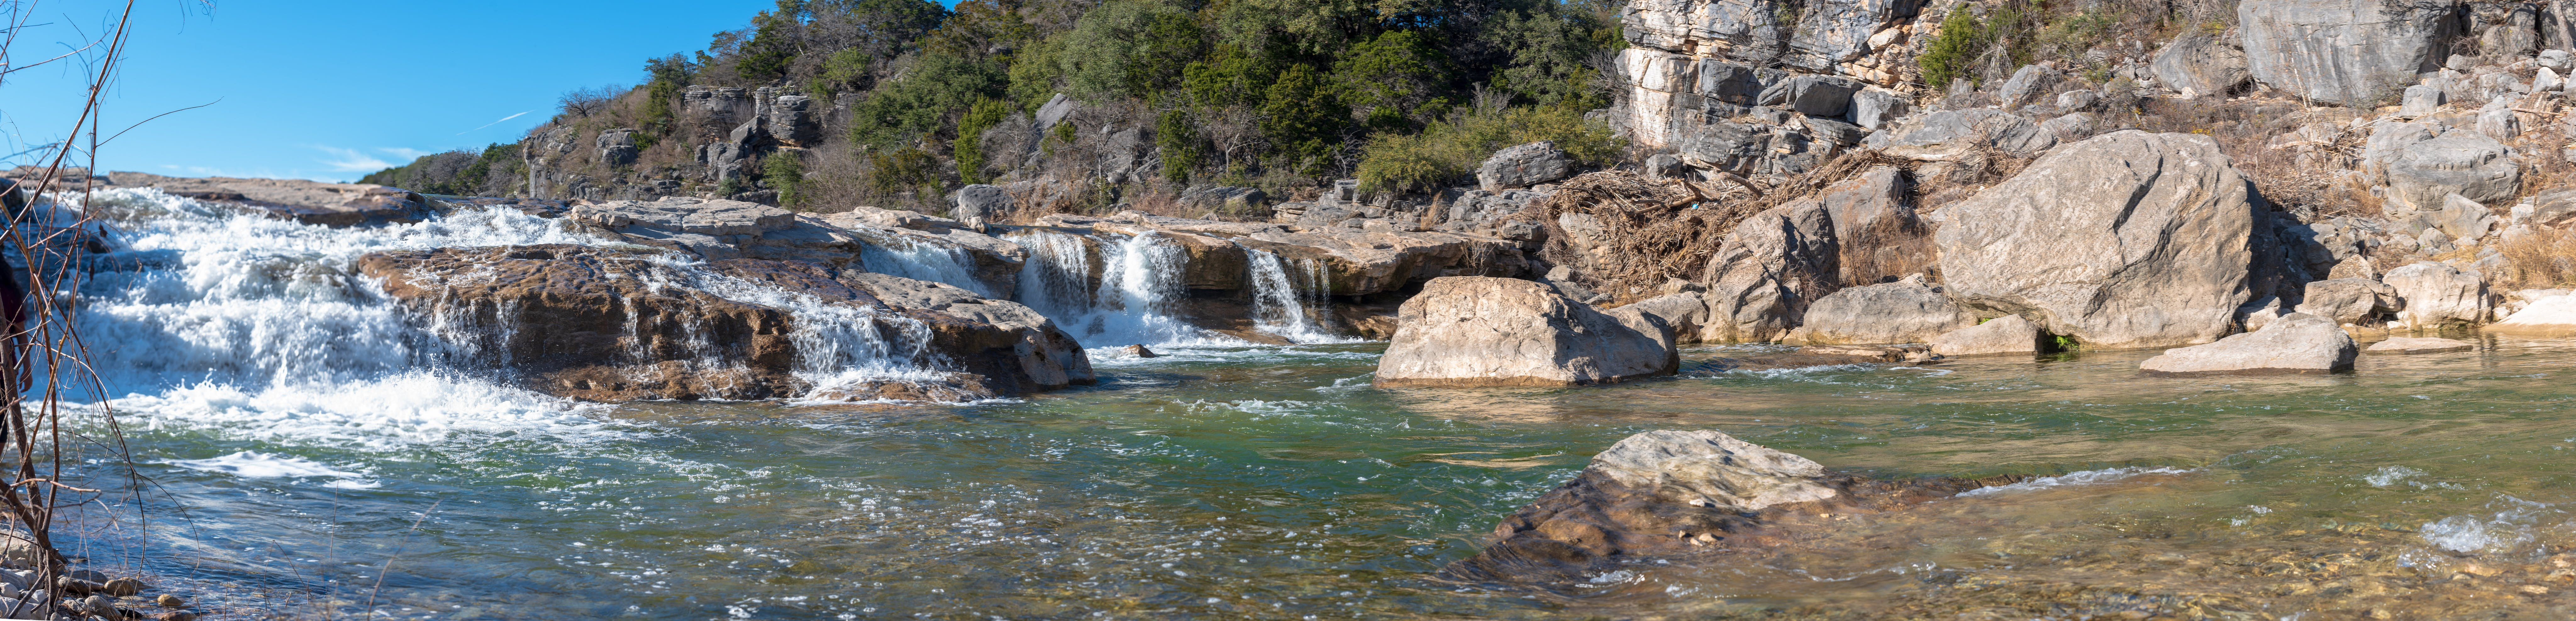 Free stock photo of landscape, Pedernales Falls, water fall